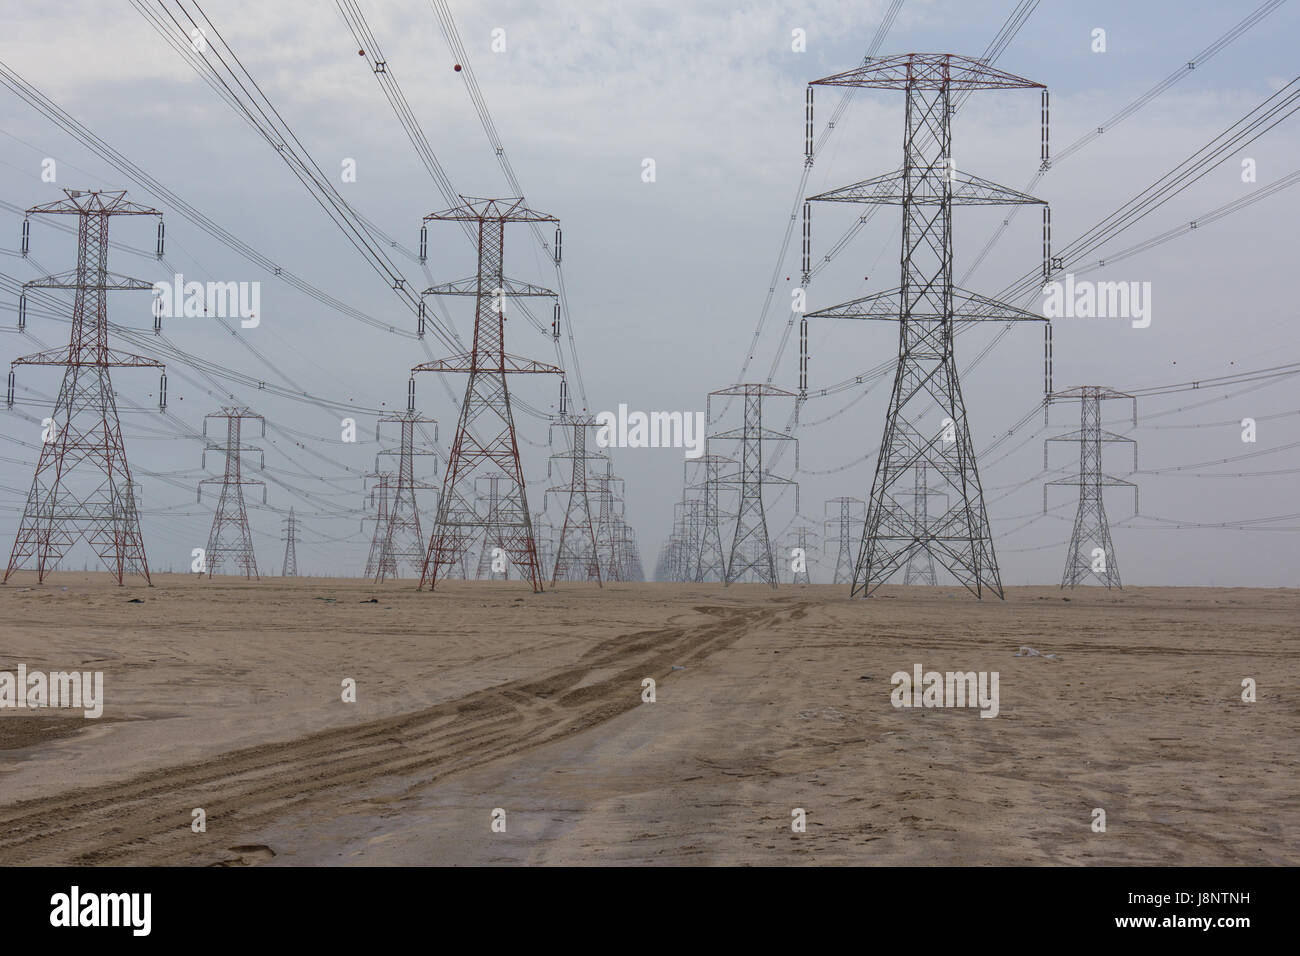 Large power lines through the desert providing the high demand for electricity in Kuwait City. - Stock Image